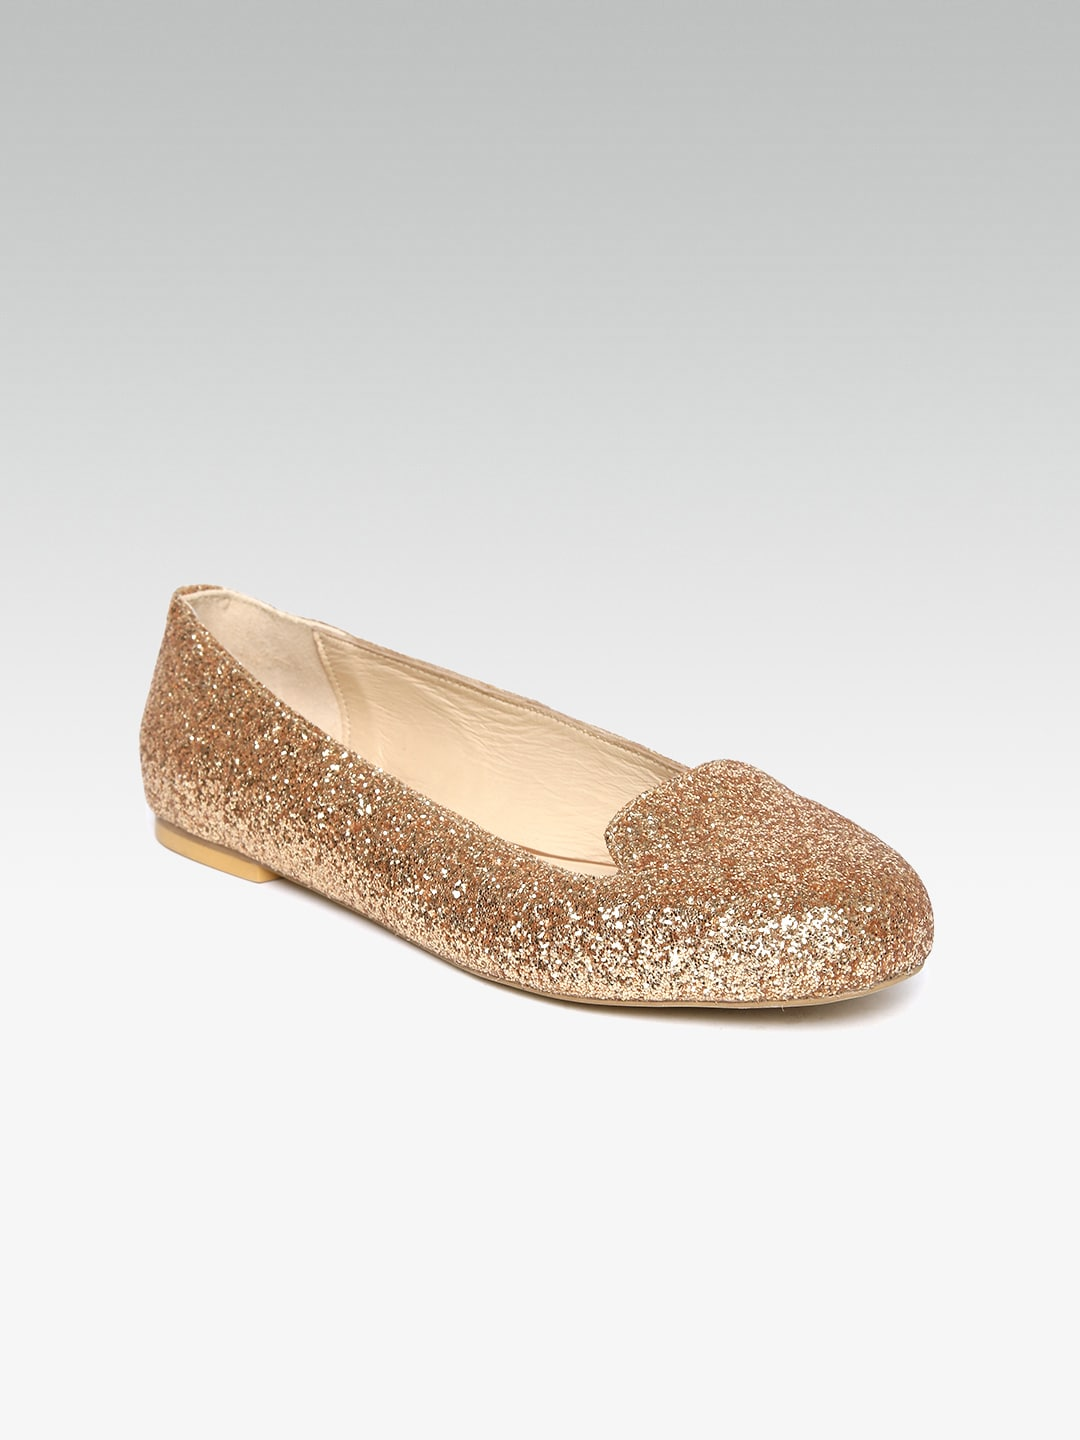 d302bab70 Buy Monrow Women Rose Gold Shimmery Flats - Flats for Women